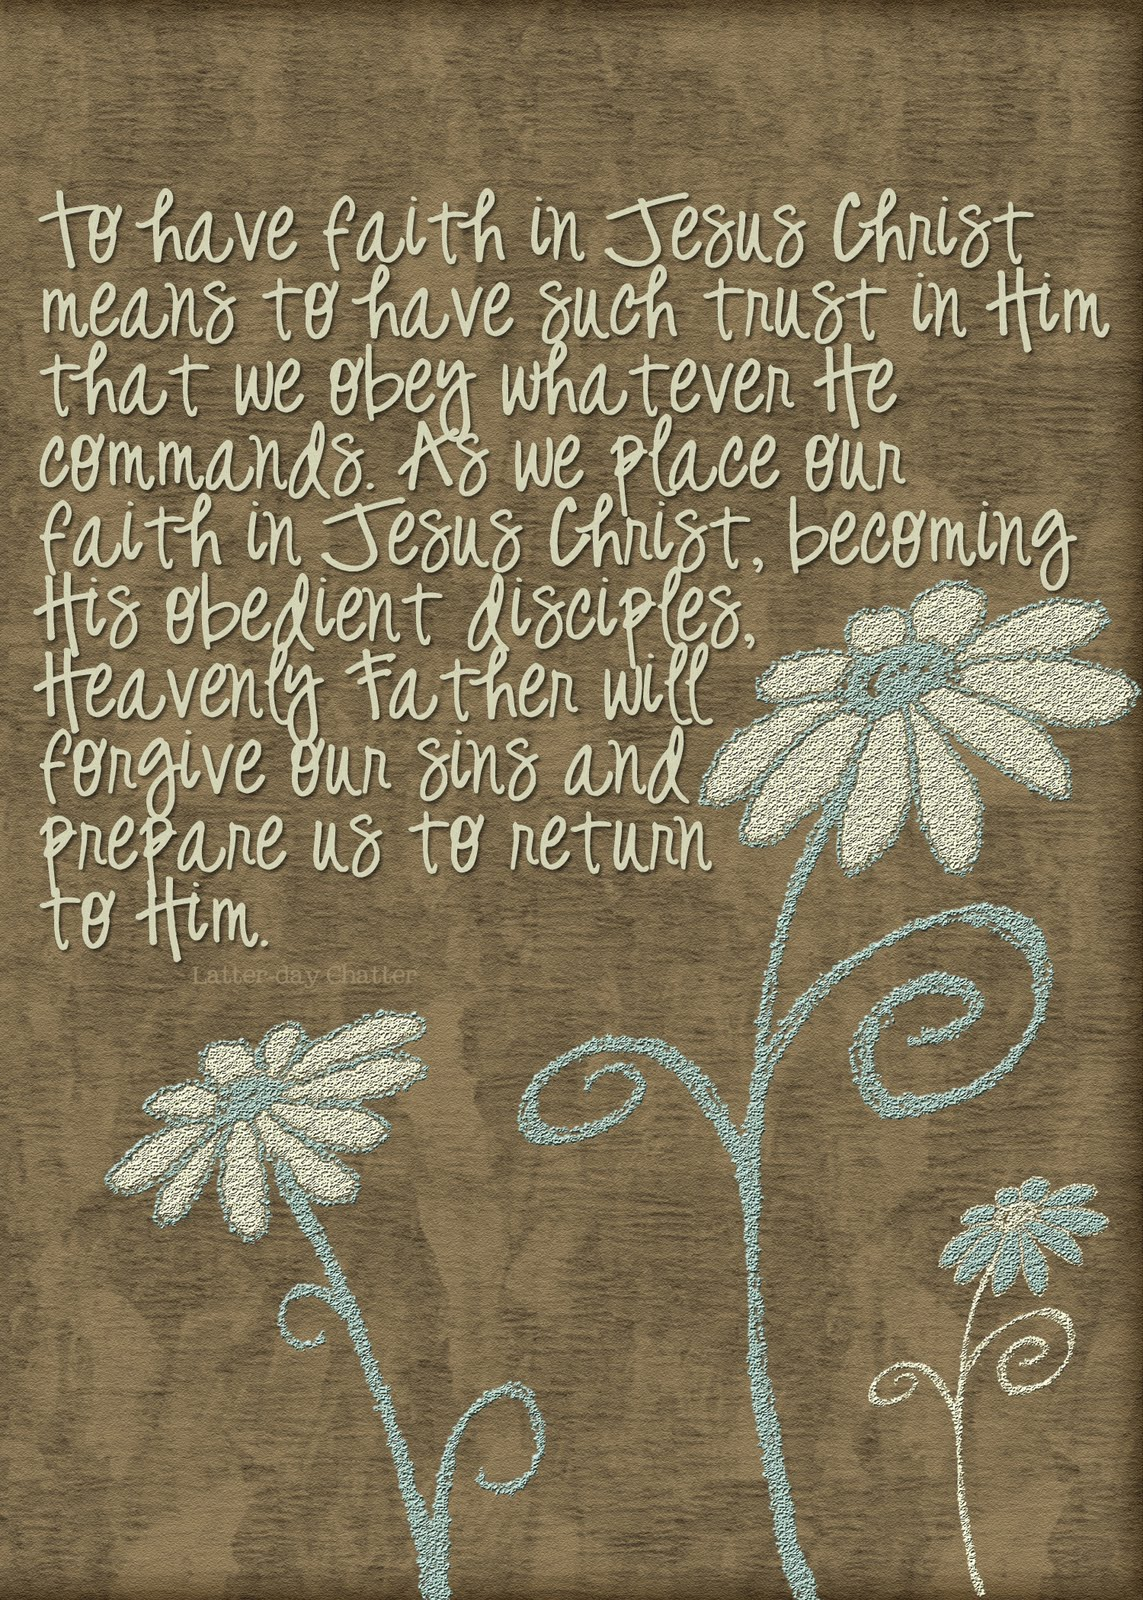 Lds Quotes On Faith Latterday Chatter August 2010